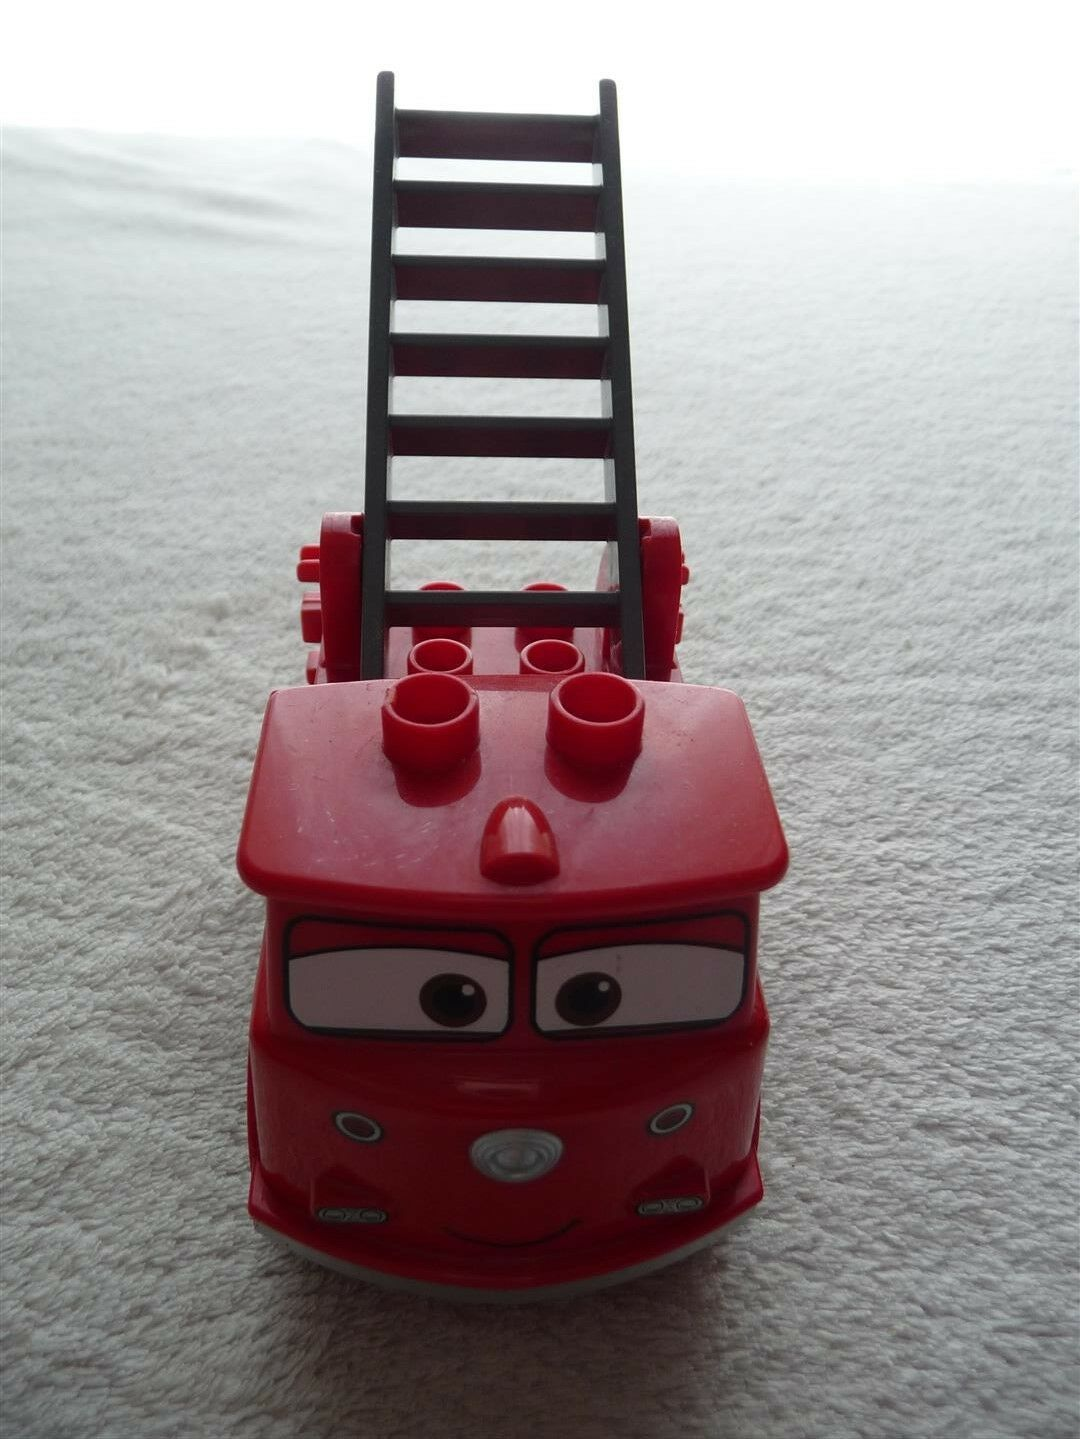 LEGO DUPLO CARS - ROT Feuerwehrauto ROT - ce83b3